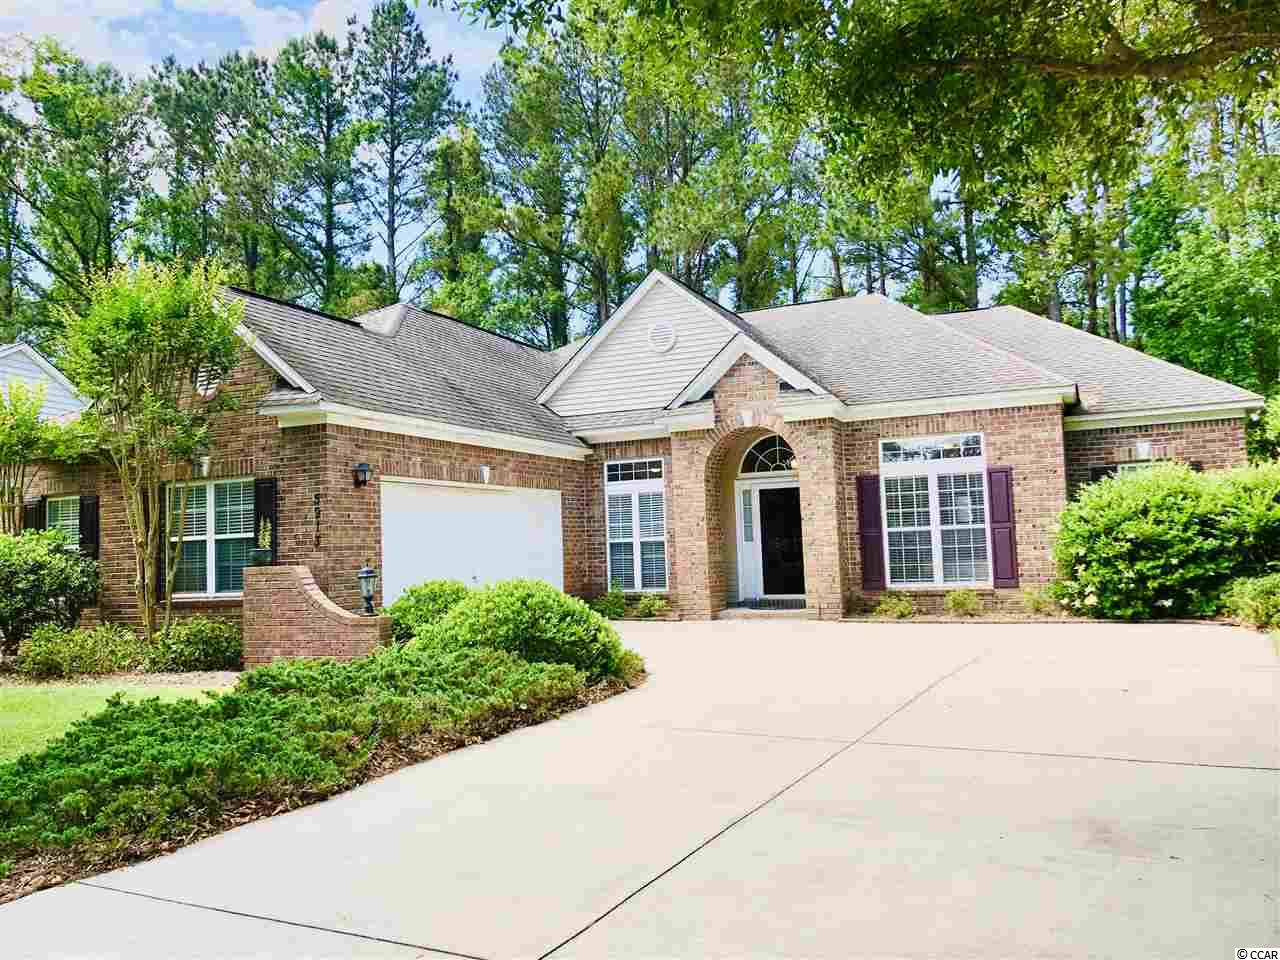 "A must-see  3 bed, 2 bath home in the Cedar Creek community of the highly regarded Barefoot Resort & Golf development located in the Windy Hill section of North Myrtle Beach. The home sits at the end of a charming cul-de-sac in one of the most private locations in Barefoot. The property backs to the conservation area affording beauty and privacy in perpetuity. The wooded and well-landscaped property makes for easy outdoor maintenance and provides shade to beat the summer heat guaranteeing more free time to enjoy the many amenities available in the resort and North Myrtle Beach. This home's customized  floor plan offers the best in southern living and classic character. Entering the foyer, you immediately see the spacious office through French doors. Walking straight ahead beyond the foyer you enter the formal dining room through another set of classic French doors. This elegant dining area looks out on park-like beauty through a wall of windows and is easily accessible to the spacious kitchen featuring plenty of oversized cabinets, Corian countertops and a breakfast bar. Here the floor plan opens to the roomy breakfast nook with its sunny wall of windows and sliding glass door leading to the stamped concrete patio. The adjacent living/family room, featuring a corner fireplace, built-in shelves and an entertainment component niche, opens up to another set of French doors into the gorgeous Carolina room with plenty of natural light and vaulted ceilings. The over-sized master bedroom, located in the more private part of the home, features another window wall, tray ceiling and separate door to the patio. The adjoining master bath has a dual sink vanity, a shower, garden tub, private commode and linen closet with an large adjacent walk-in closet. Additionalfeatures include a large laundry room with cabinet storage above, premium overhead fans/lights and blinds throughout, Central vacuum, a built-in security system, two-car garage with a  utility-sink and  additional door to the side of the home, and an above and at-ground storage. Your monthly HOA fee includes security system monitoring, high speed internet, cable, access to the residents-only club with its fitness center, library, party room, pool table, kitchen, swimming pool, playground, basketball and tennis courts, gazebo and walking trails. These fees provide access to the ""Tower"" swimming pool at the front of Barefoot and use of the resort-owned beach cabana and dedicated beach parking just two miles away. Barefoot is home to four championship golf courses (Love, Fazio, Norman, Dye), a golf academy and driving range. Resort golf memberships are available for those ""can't get enough"" golfers. Access to two restaurants and the marina without ever leaving the property or, from the marina, take the shuttle across the waterway to Barefoot Landing with its restaurants, shops, tourist attractions and sightseeing. Or if you prefer you can walk or drive across the swing bridge to get to the ""The Landing"", grocery store or pharmacy all without using highway 17. The rest of America's summer playground is easily accessed using Water Tower Rd. to get to route 31 and route 90. If you are looking for a great place on the Grand Stand don't miss seeing this home!"